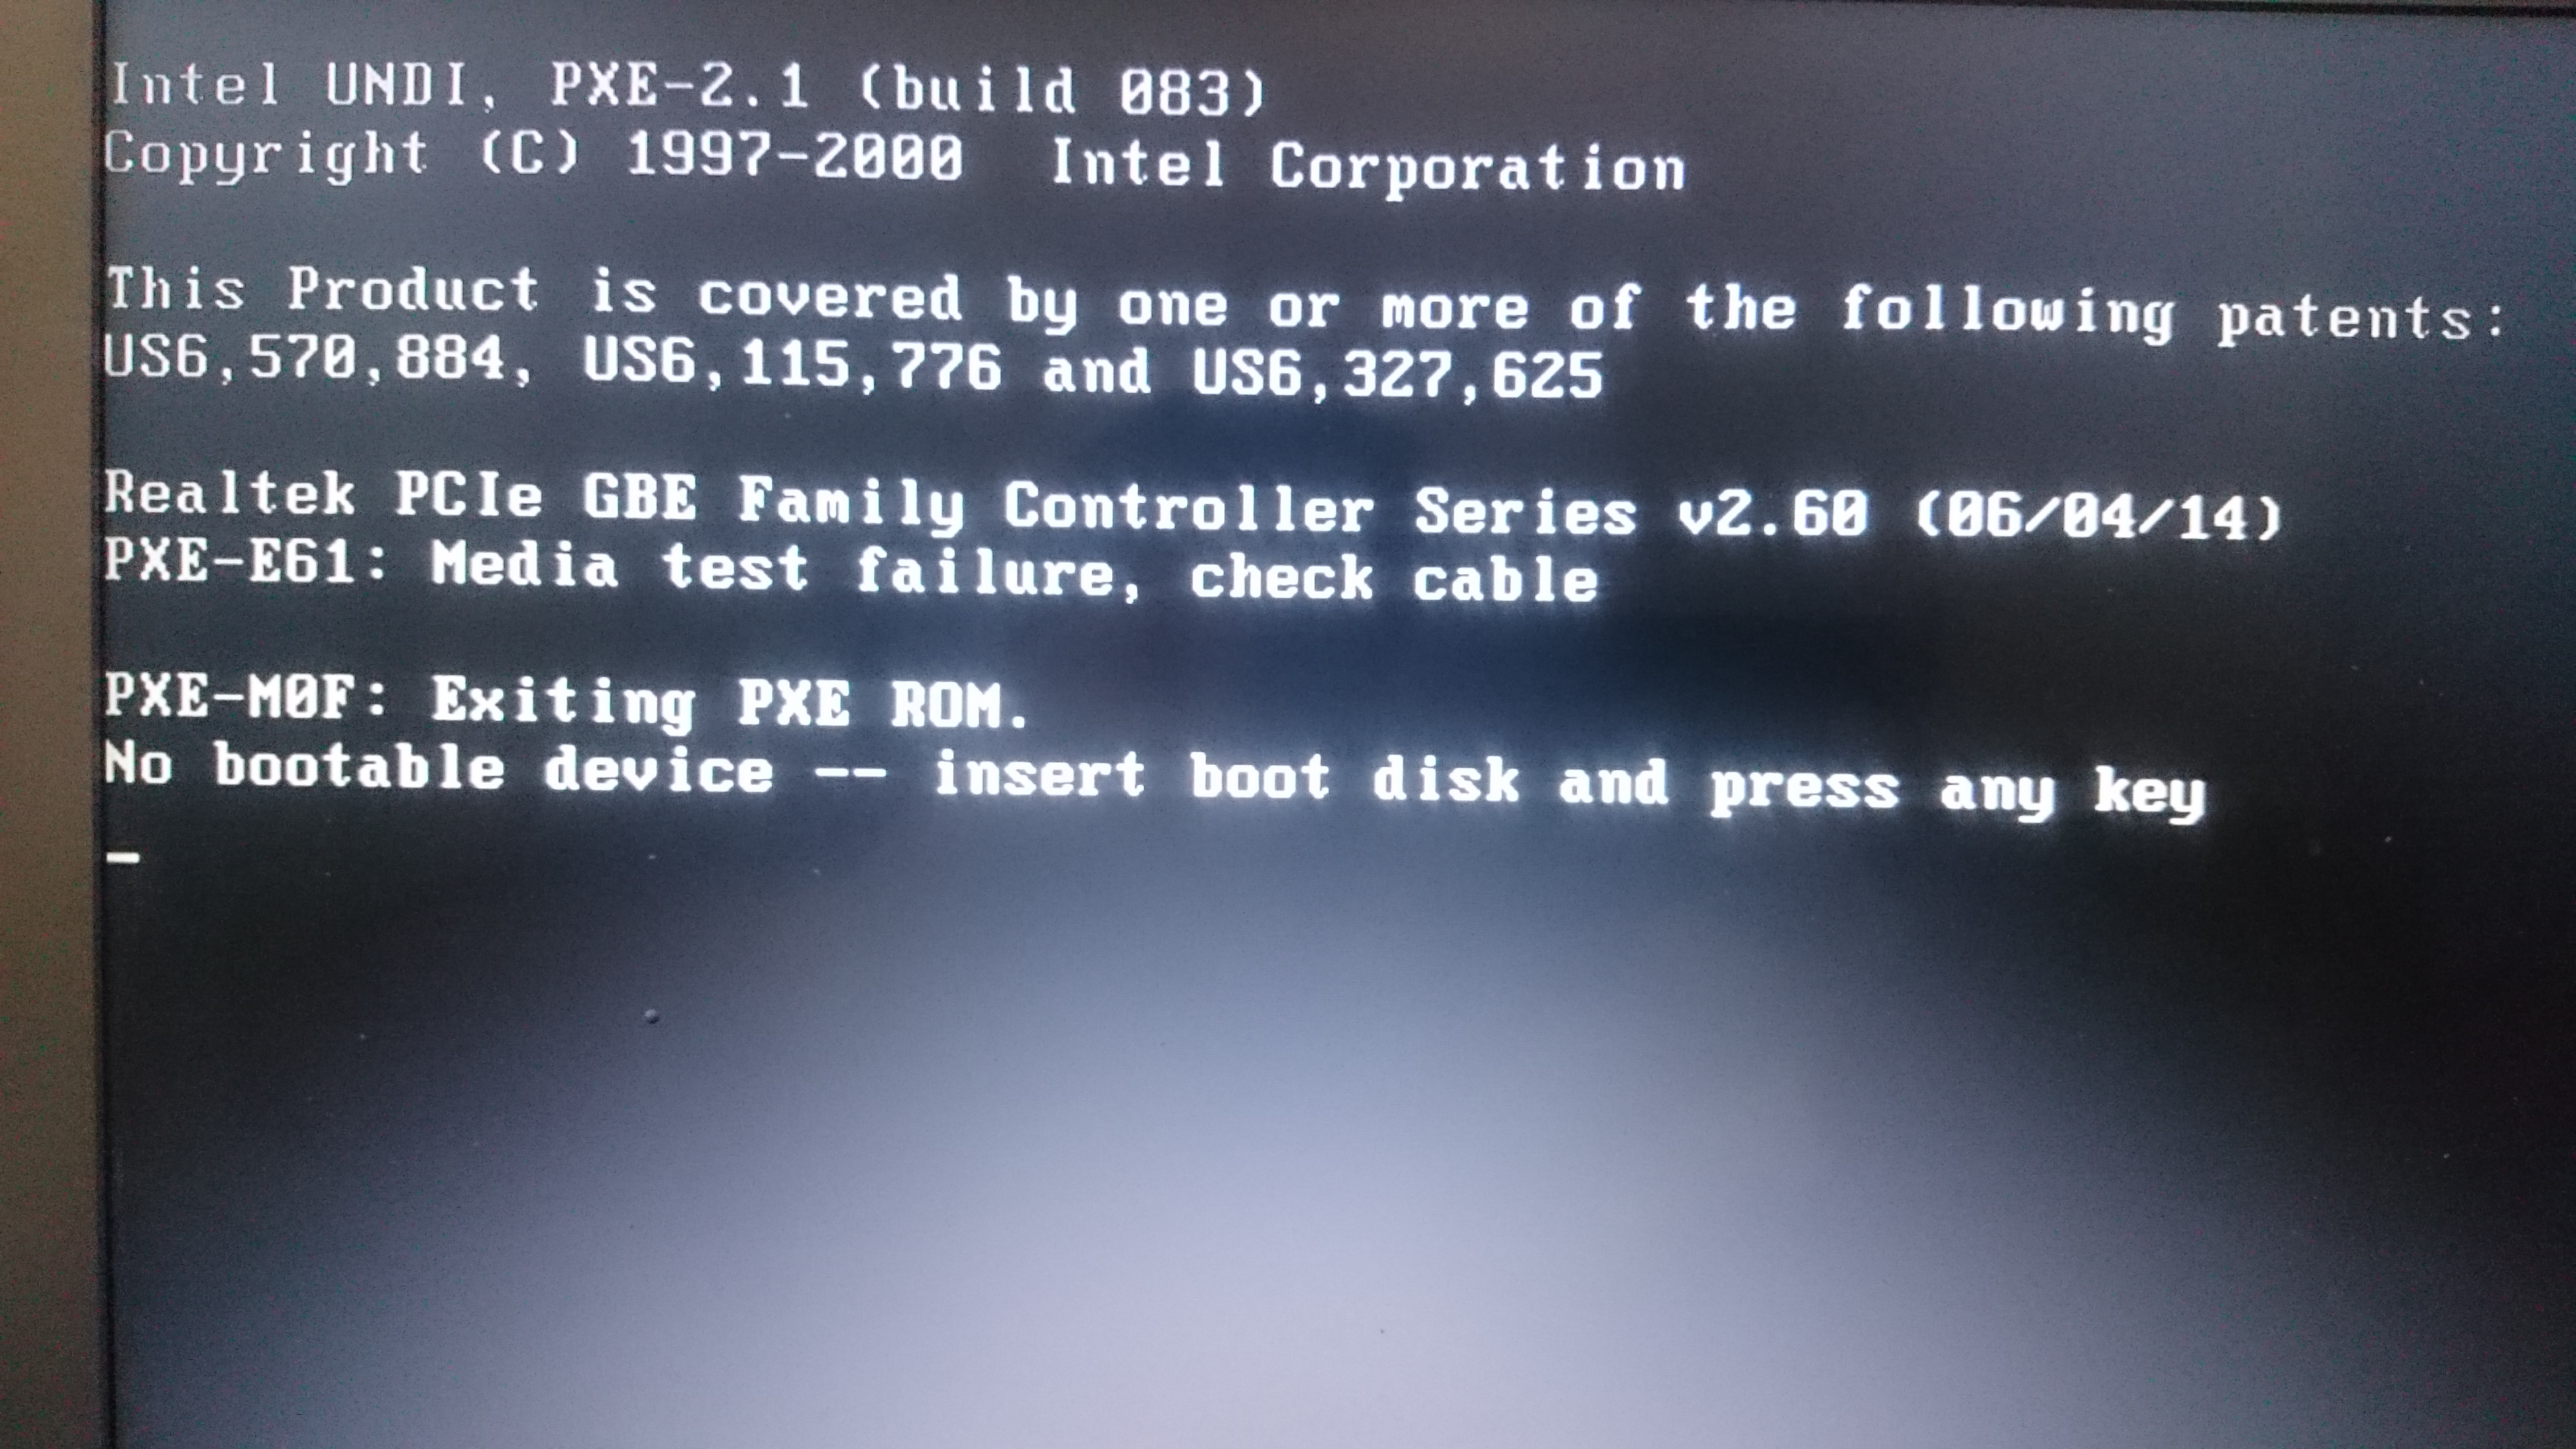 Can't access BIOS lenovo z51 Urgent - Laptops and Pre-Built